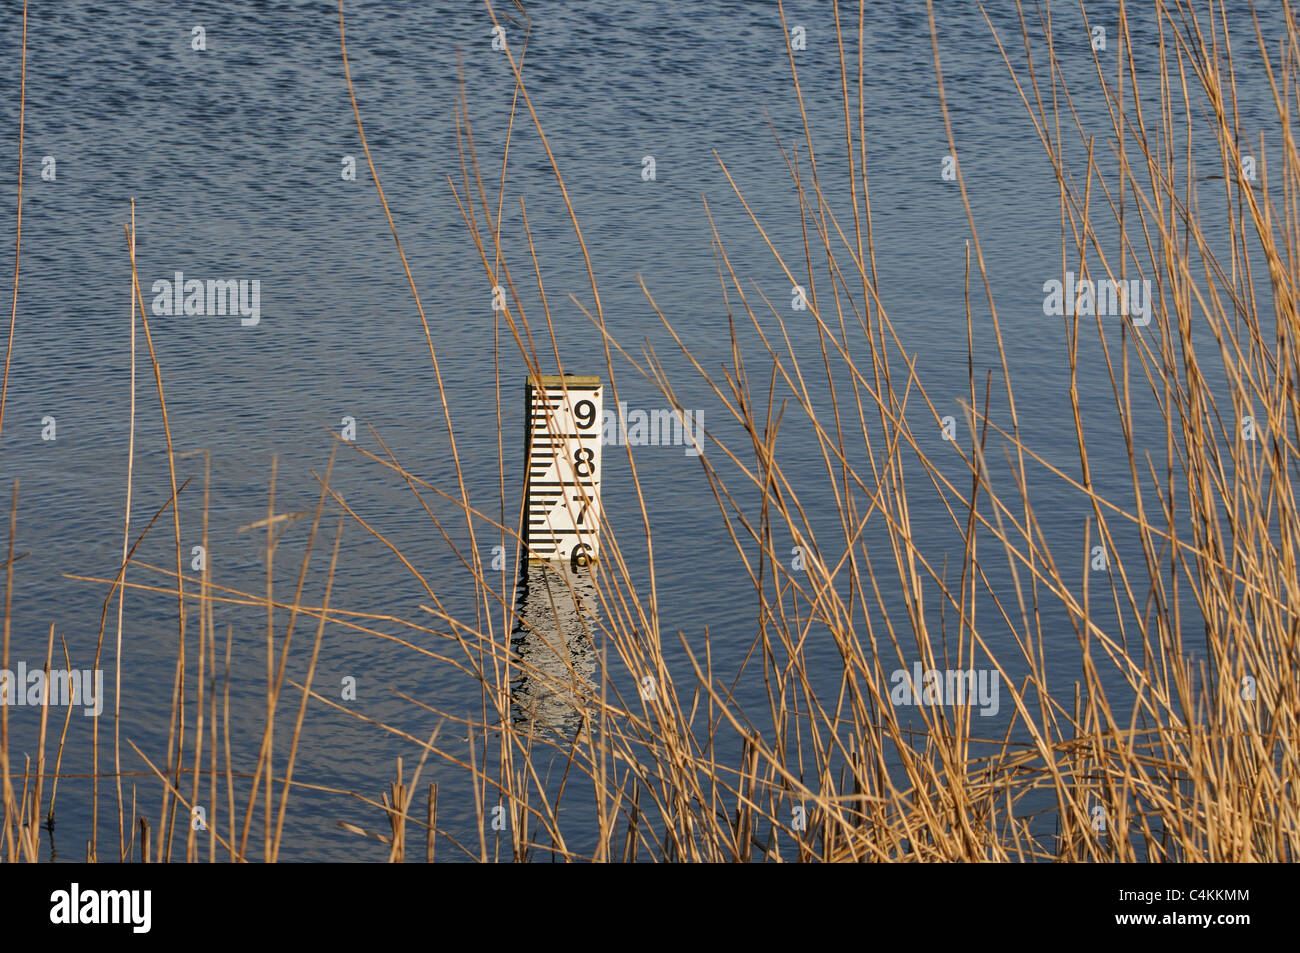 A stake with a scale measuring the depth of a lake. - Stock Image